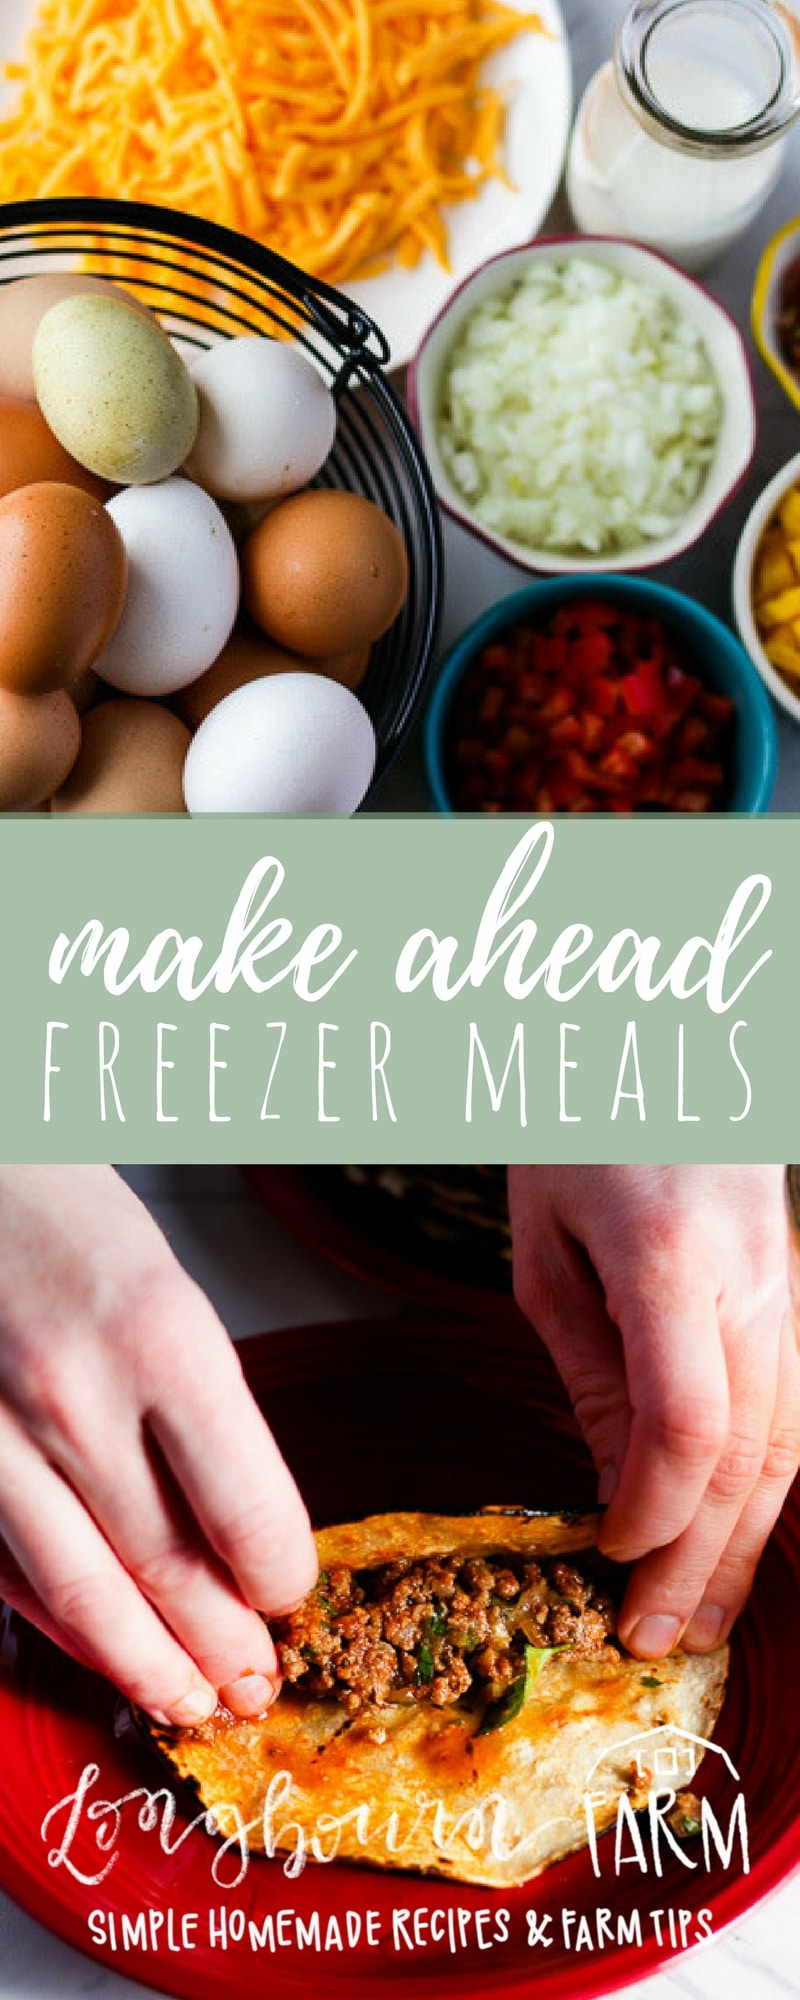 Make ahead freezer meals are a fantastic way to always have a homemade dinner on the table, even on busy days where cooking isn't an option. Get the details on stocking your freezer, great freezer meal ideas, and how to make any meal a freezer meal! #makeaheadmeal #freezermeal #freezermeals #makeahead #easydinner #fastdinner #mealprep #dinnerprep